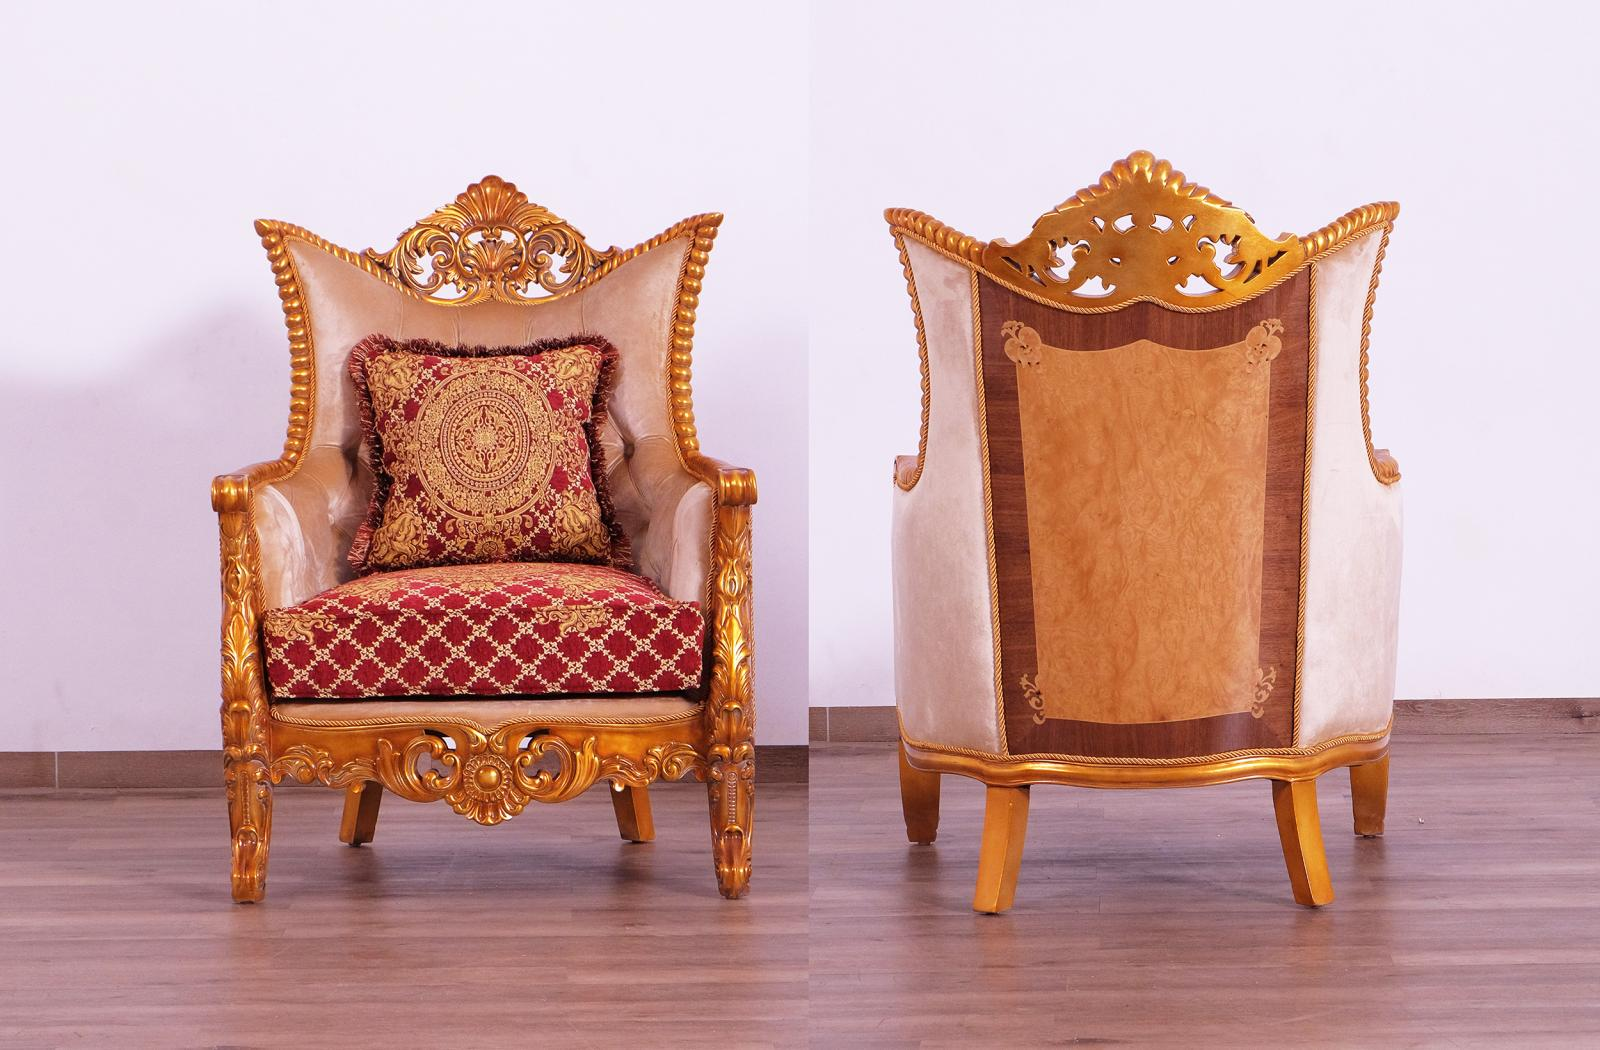 Classic  Traditional Gold  Red Wood  Solid Hardwood and Fabric Arm Chair Set EUROPEAN FURNITURE  31058-C-Set-2